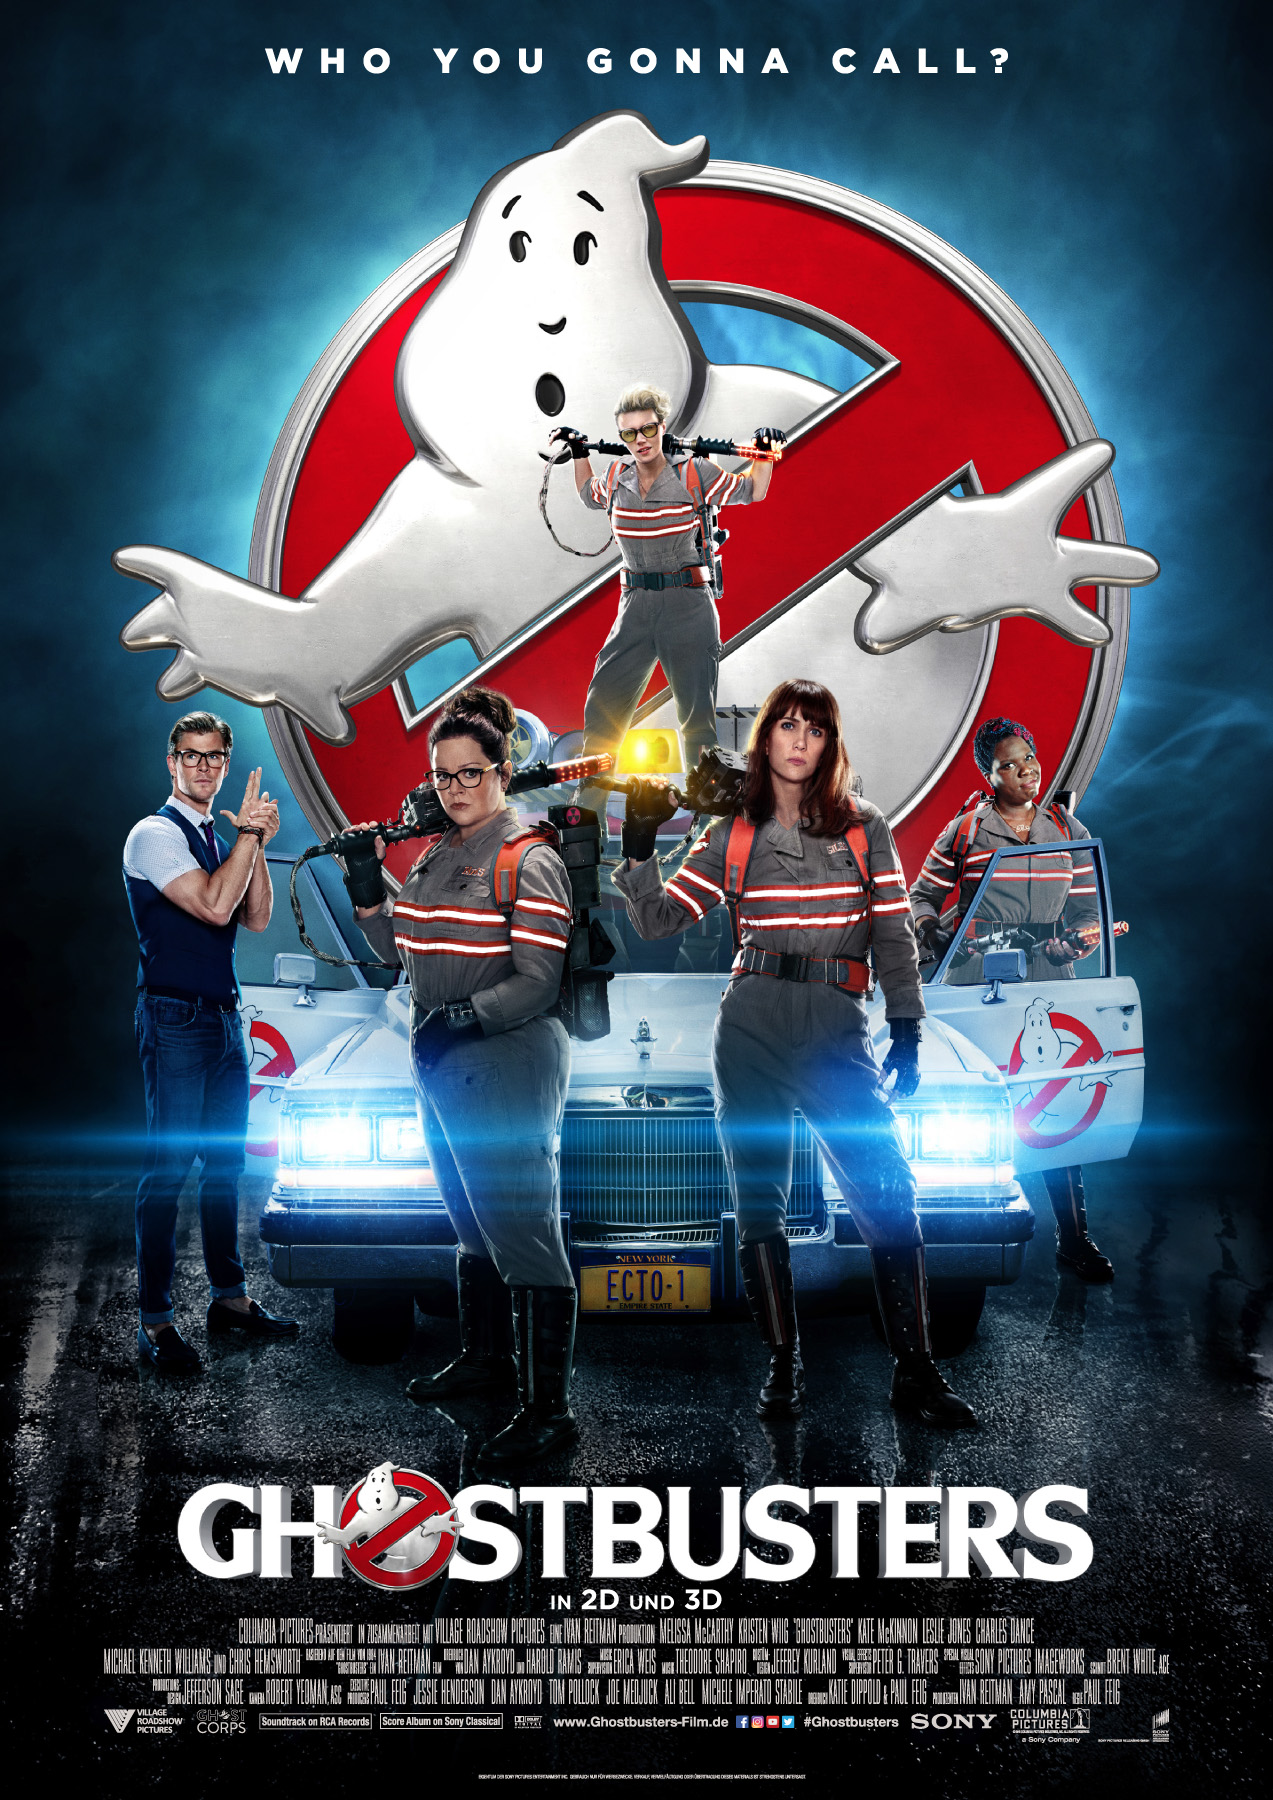 Ghostbusters 1 Ganzer Film Deutsch